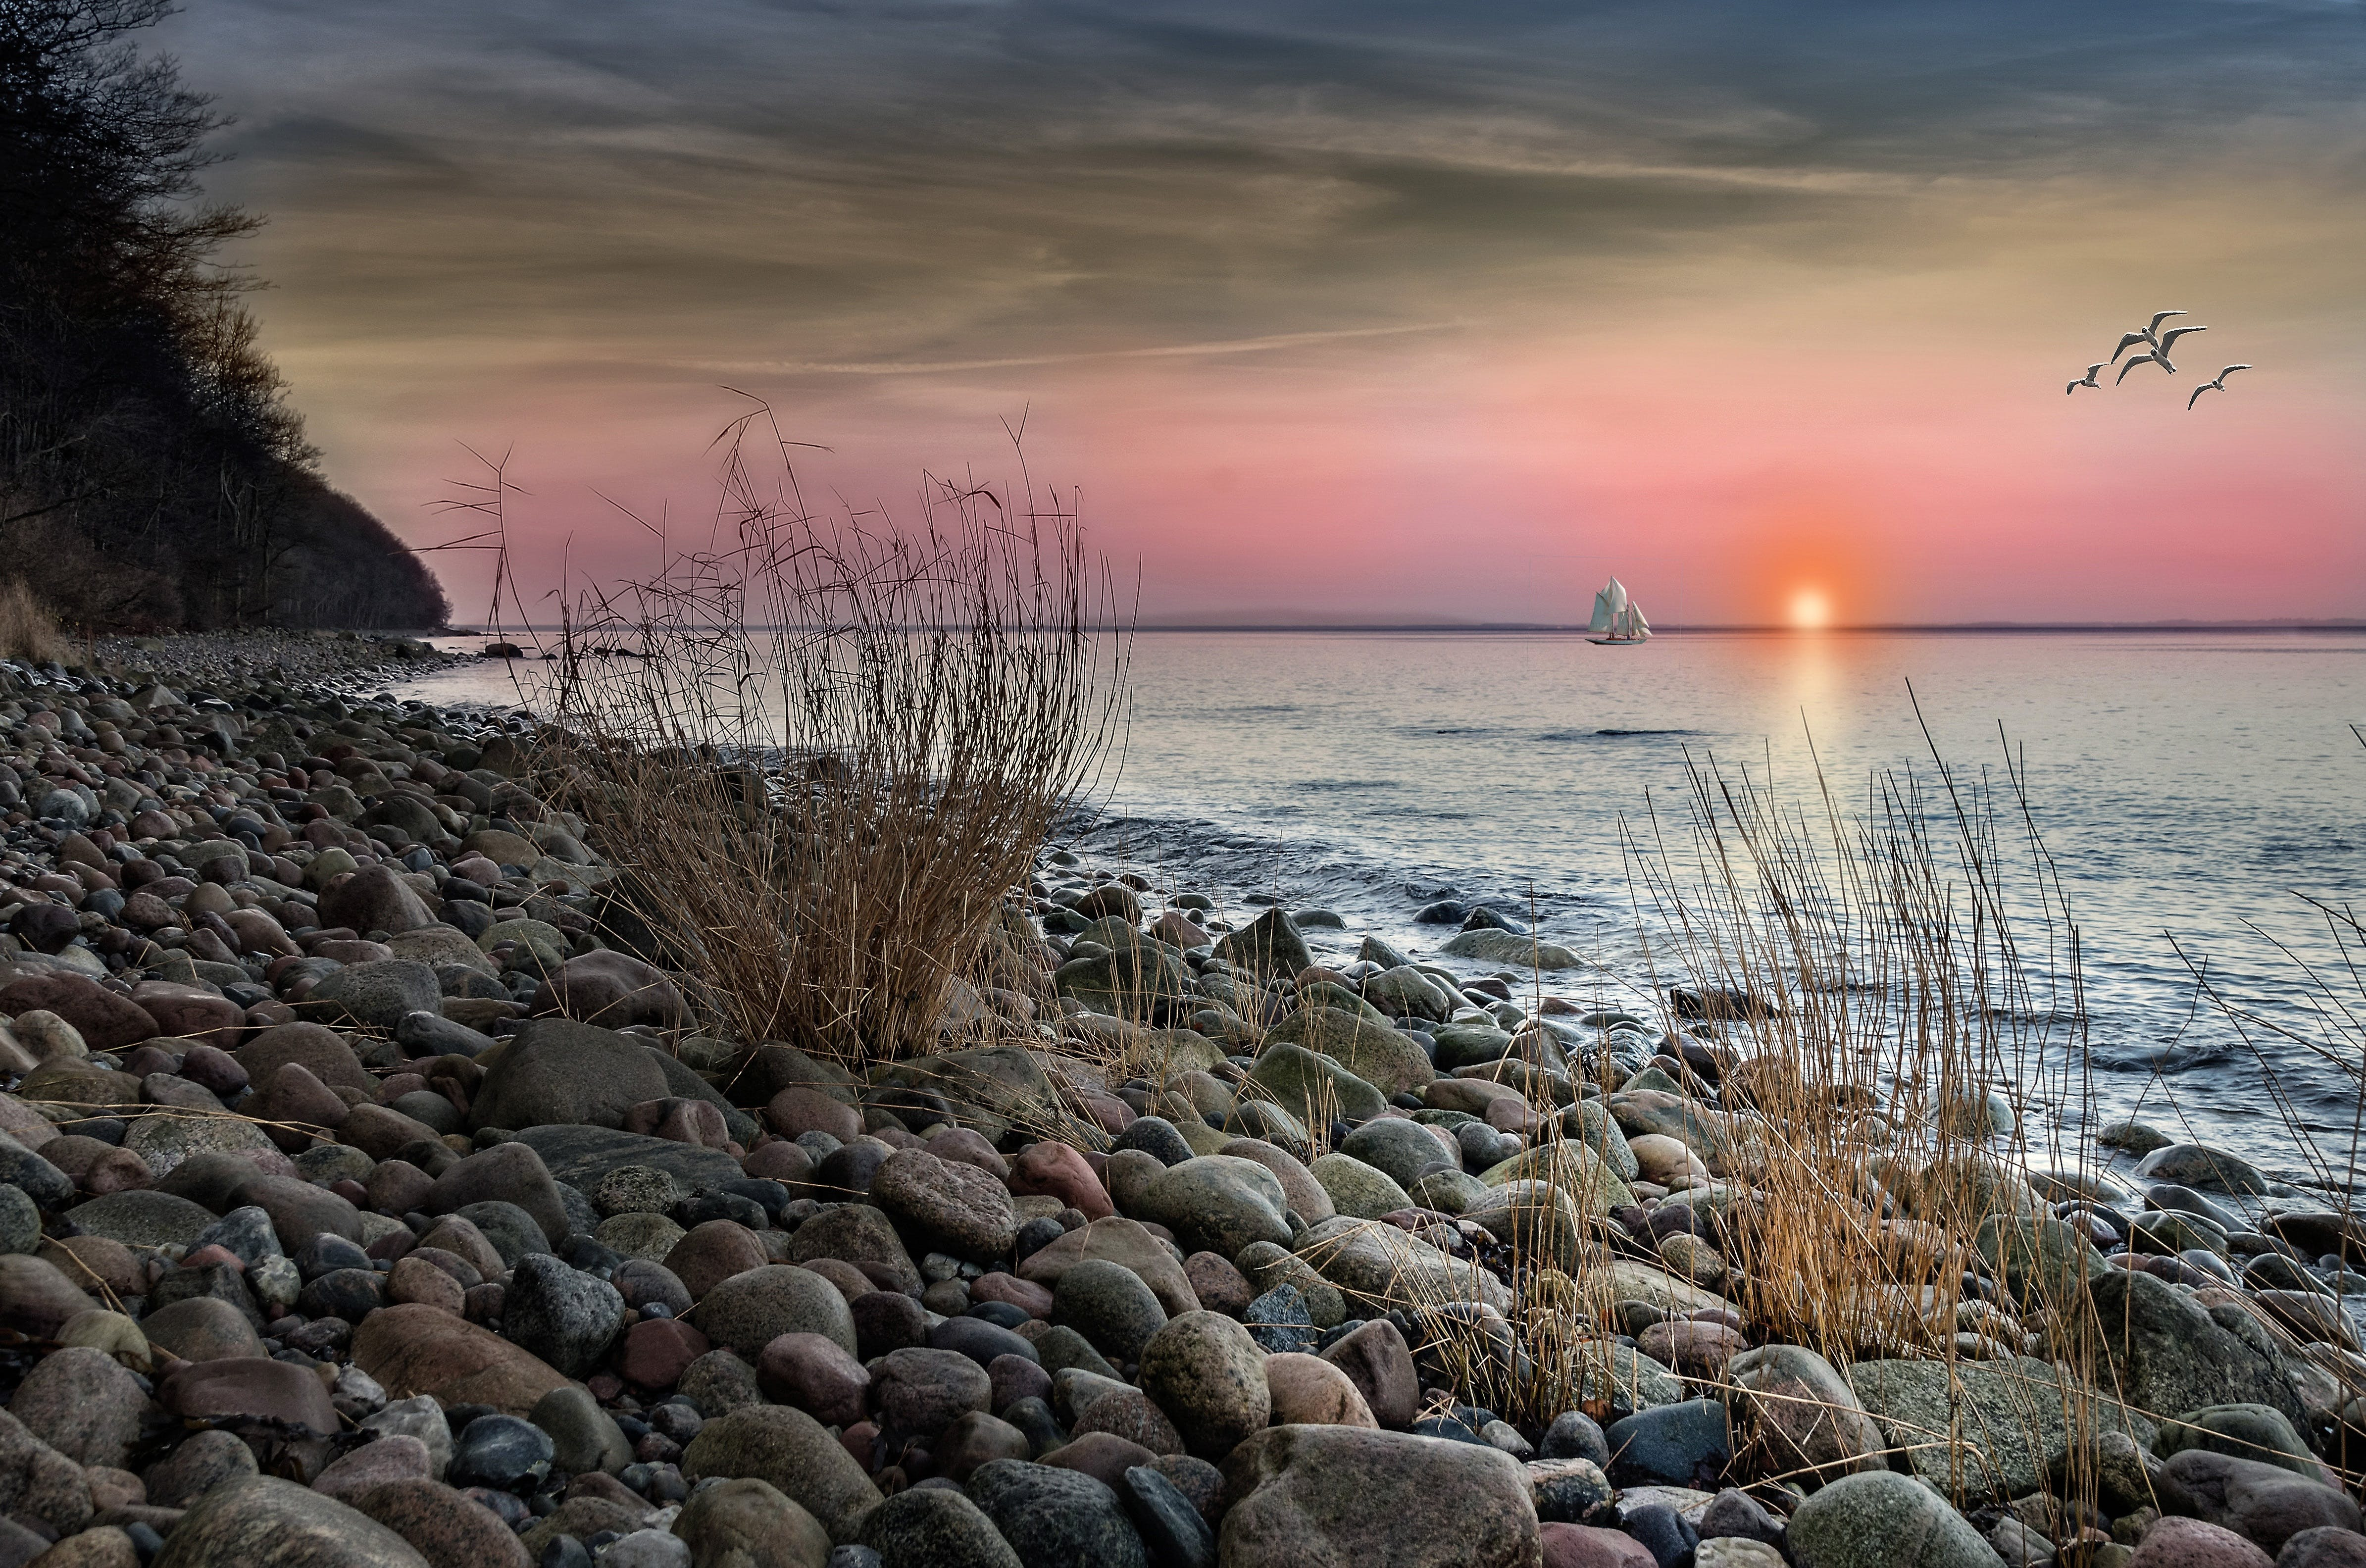 Brown and Grey Stones on Seashore during Sunset